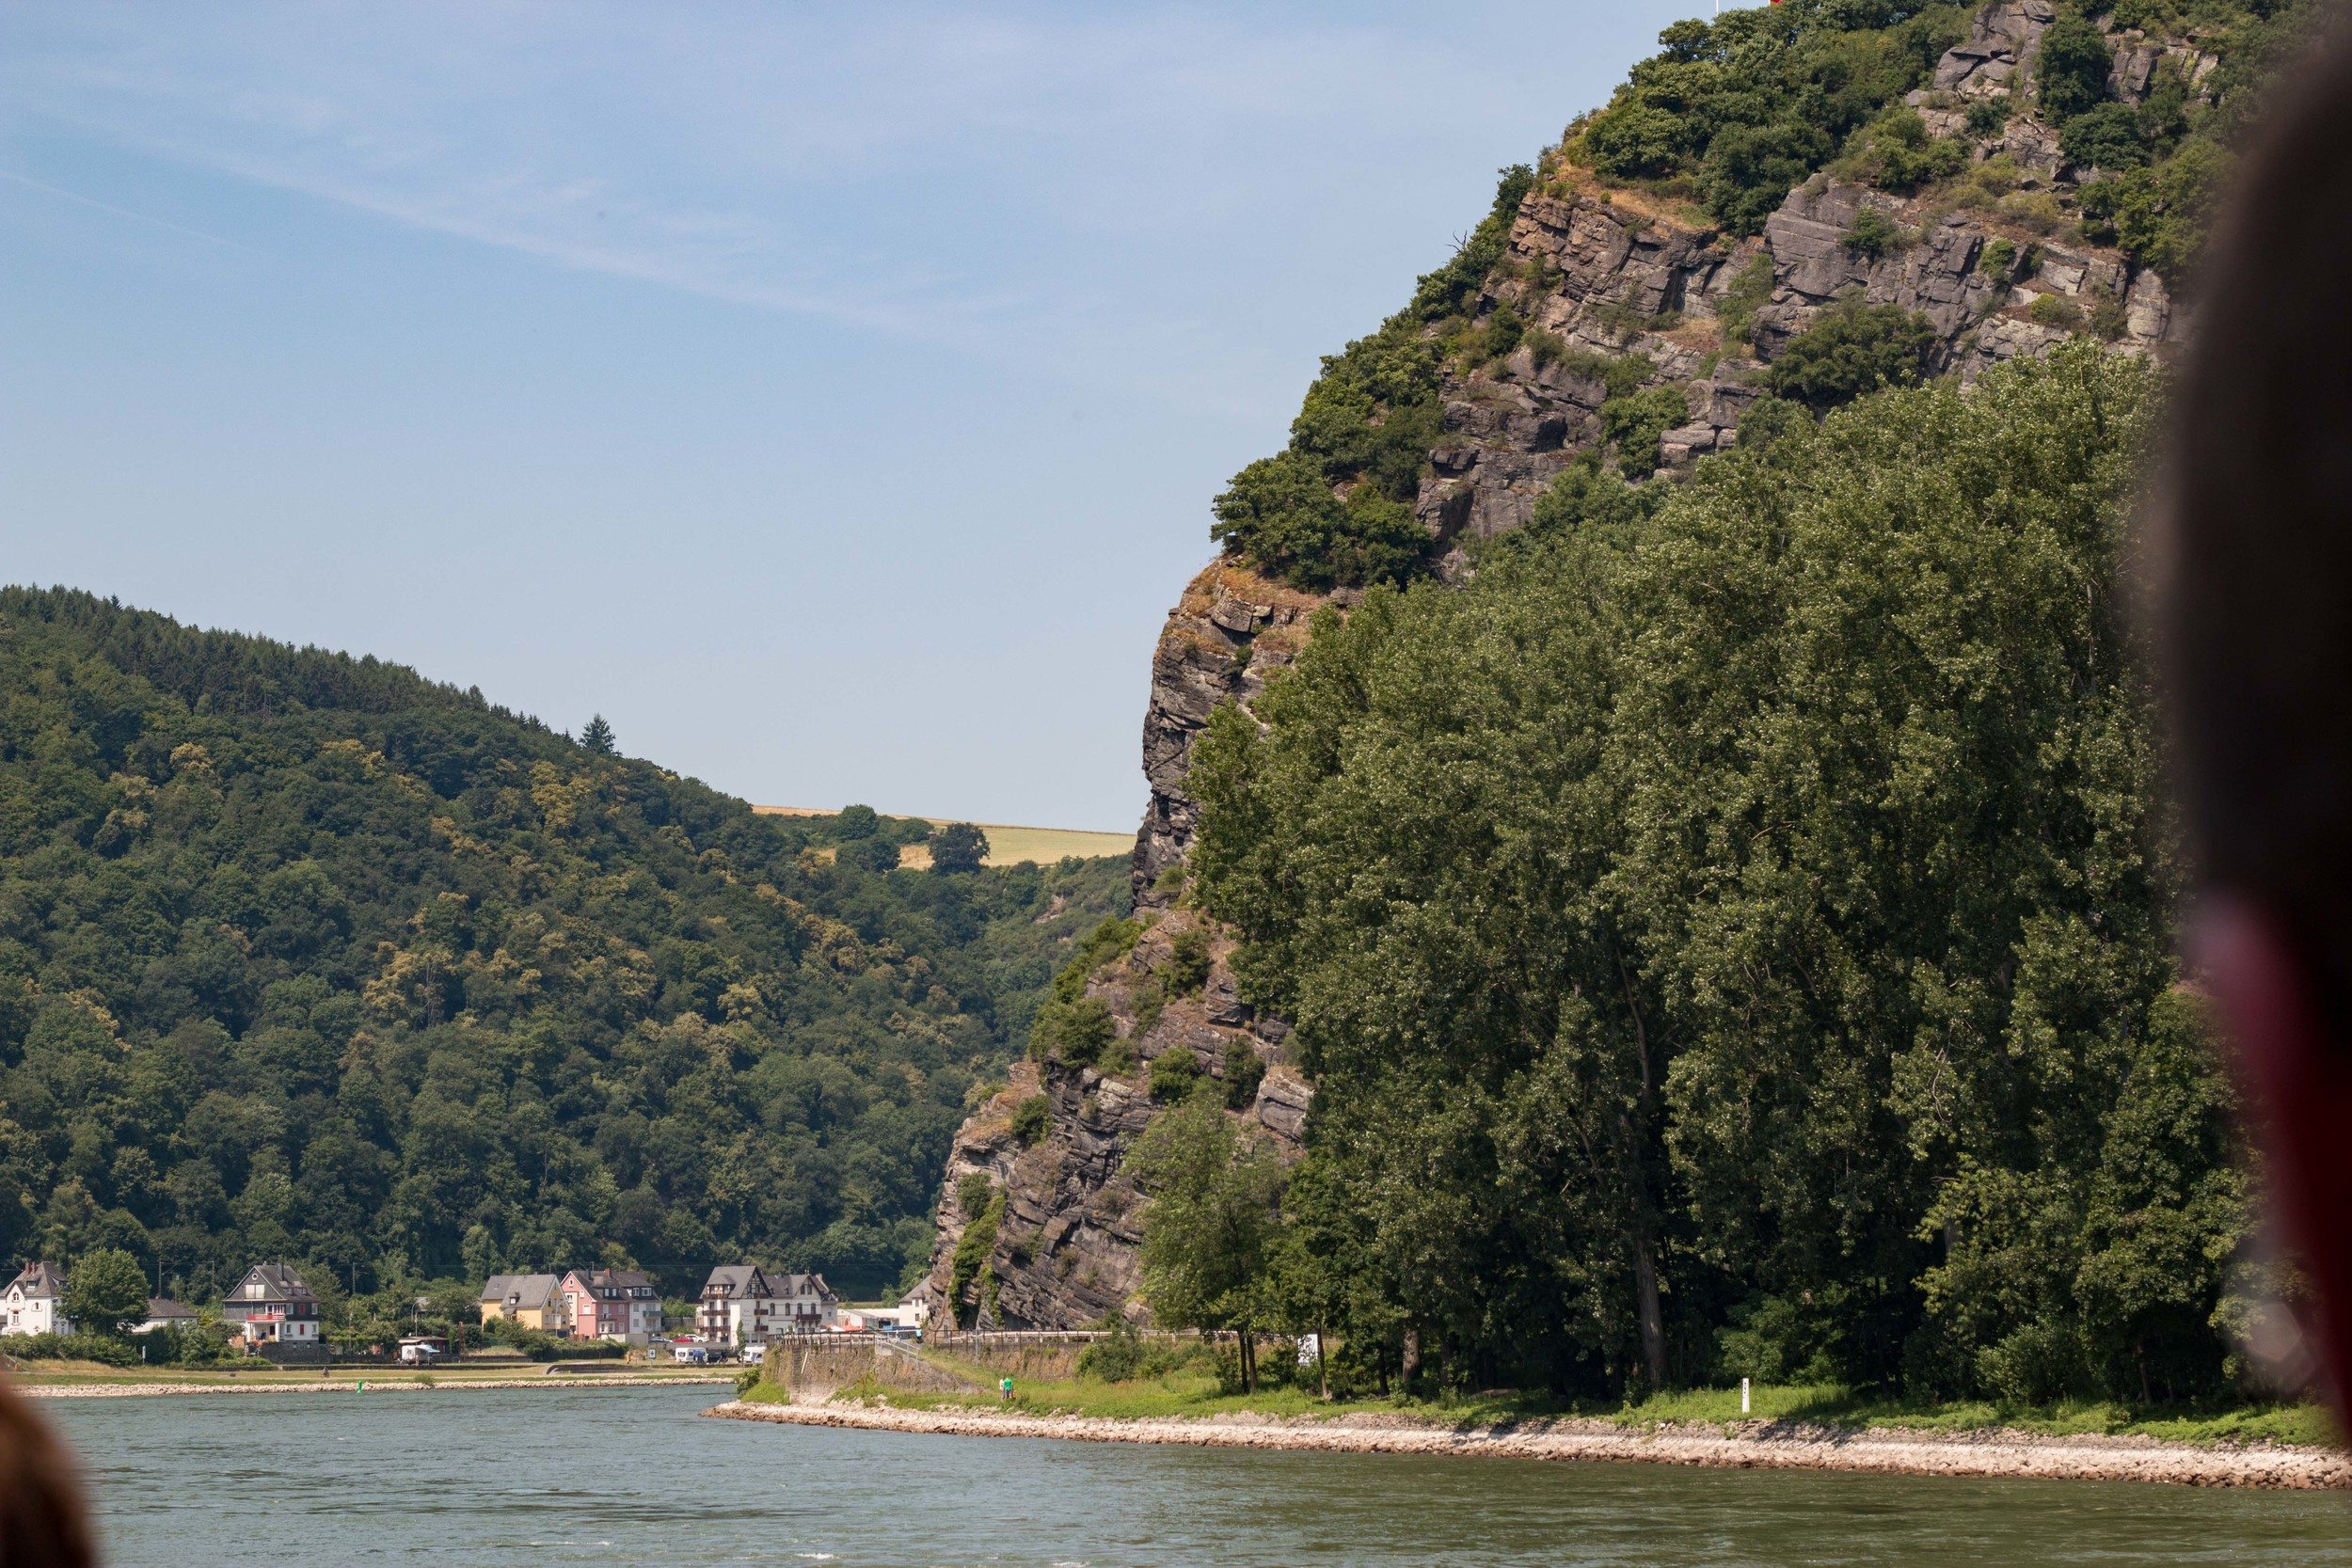 Lorelei rock, the narrowest point on the river, and the location of many shipwrecks (but probably not diveable)